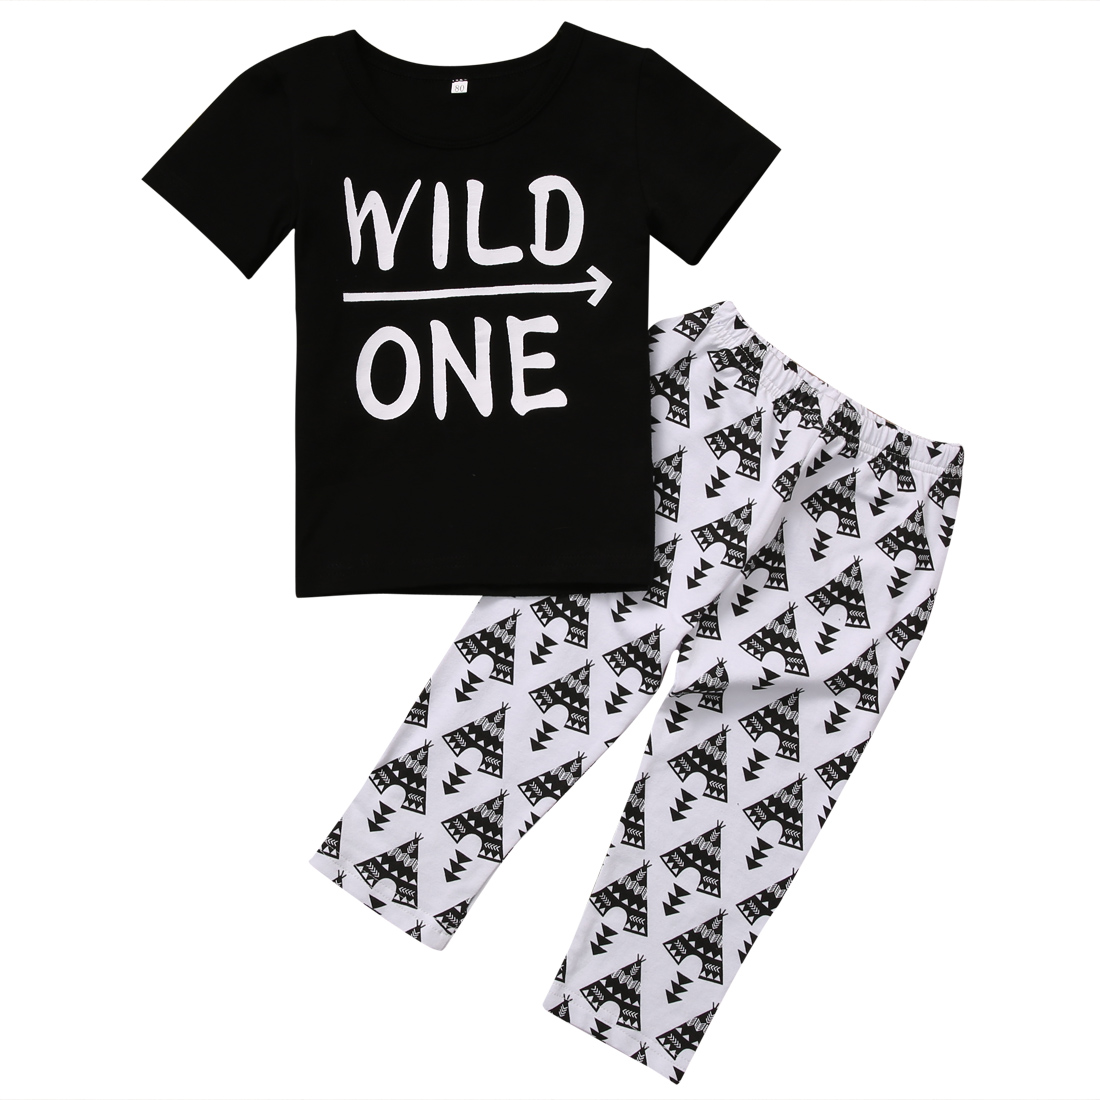 PUDCOCO 2PCS Set Newborn Baby Boy Clothes Casual T Shirt Tops+Long Pants Outfits WILD ONE Print Black Cotton 0-24M newborn kids baby boy summer clothes set t shirt tops pants outfits boys sets 2pcs 0 3y camouflage